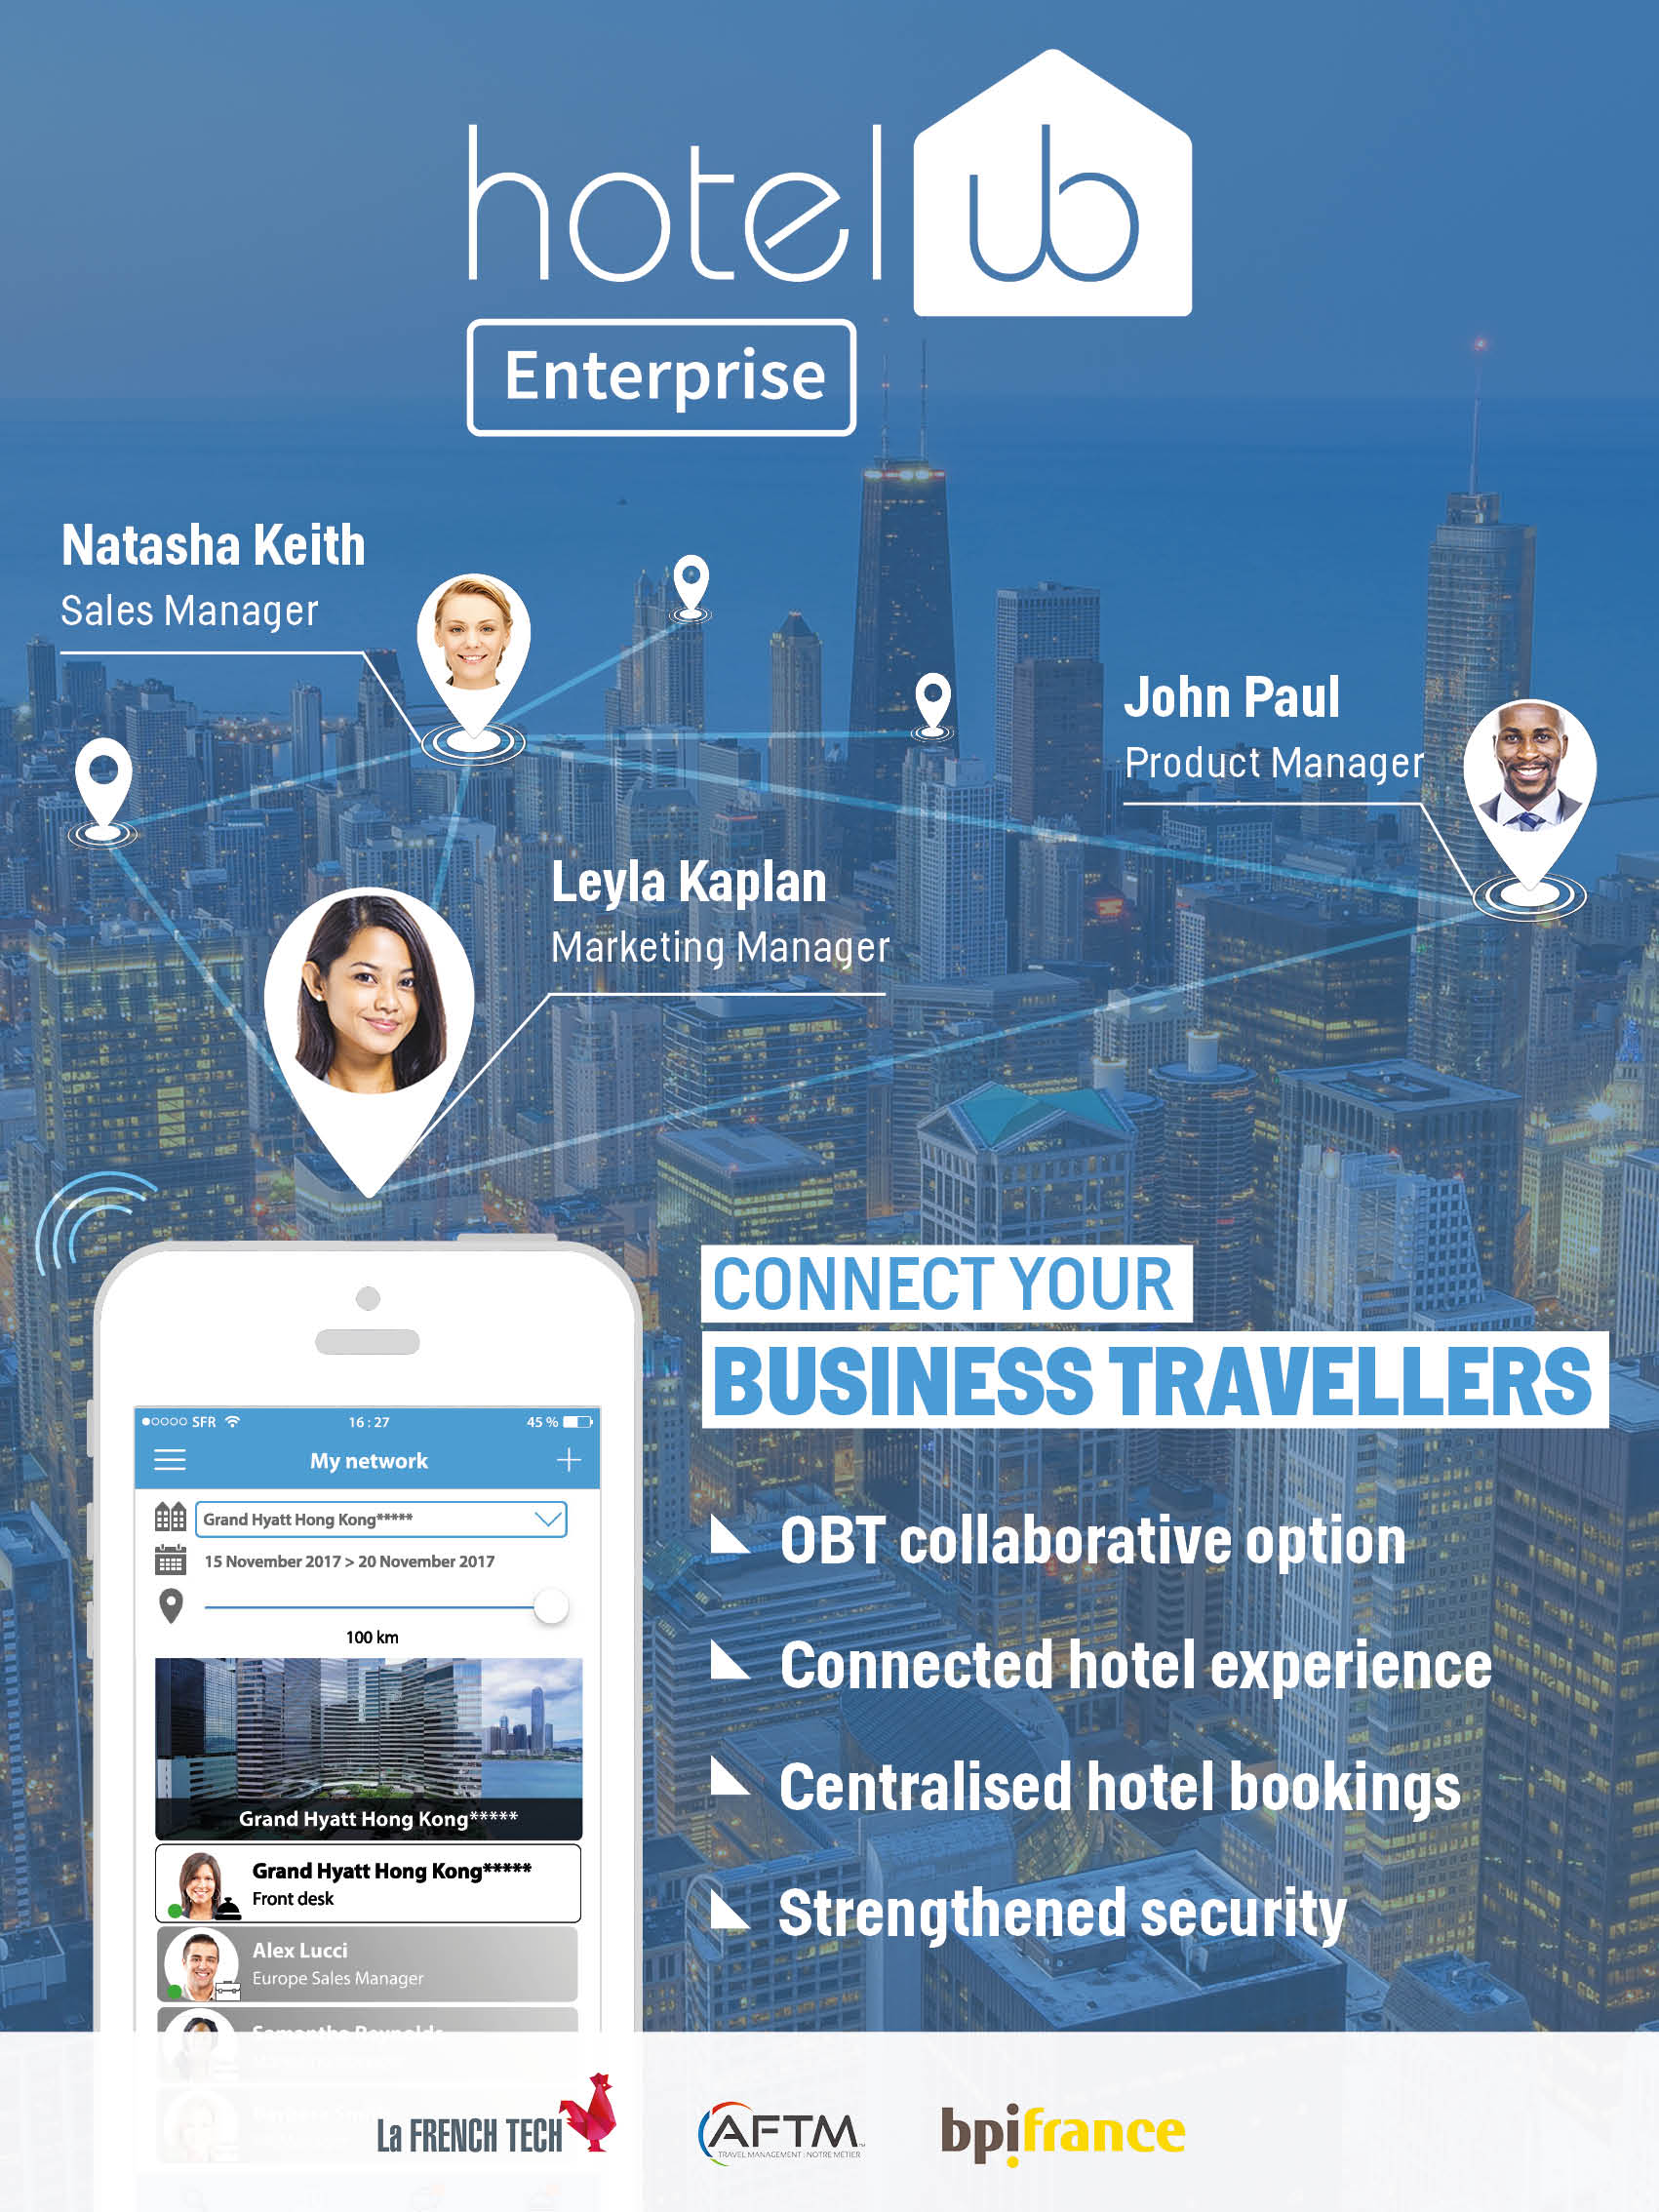 Hotelub connecting business travellers